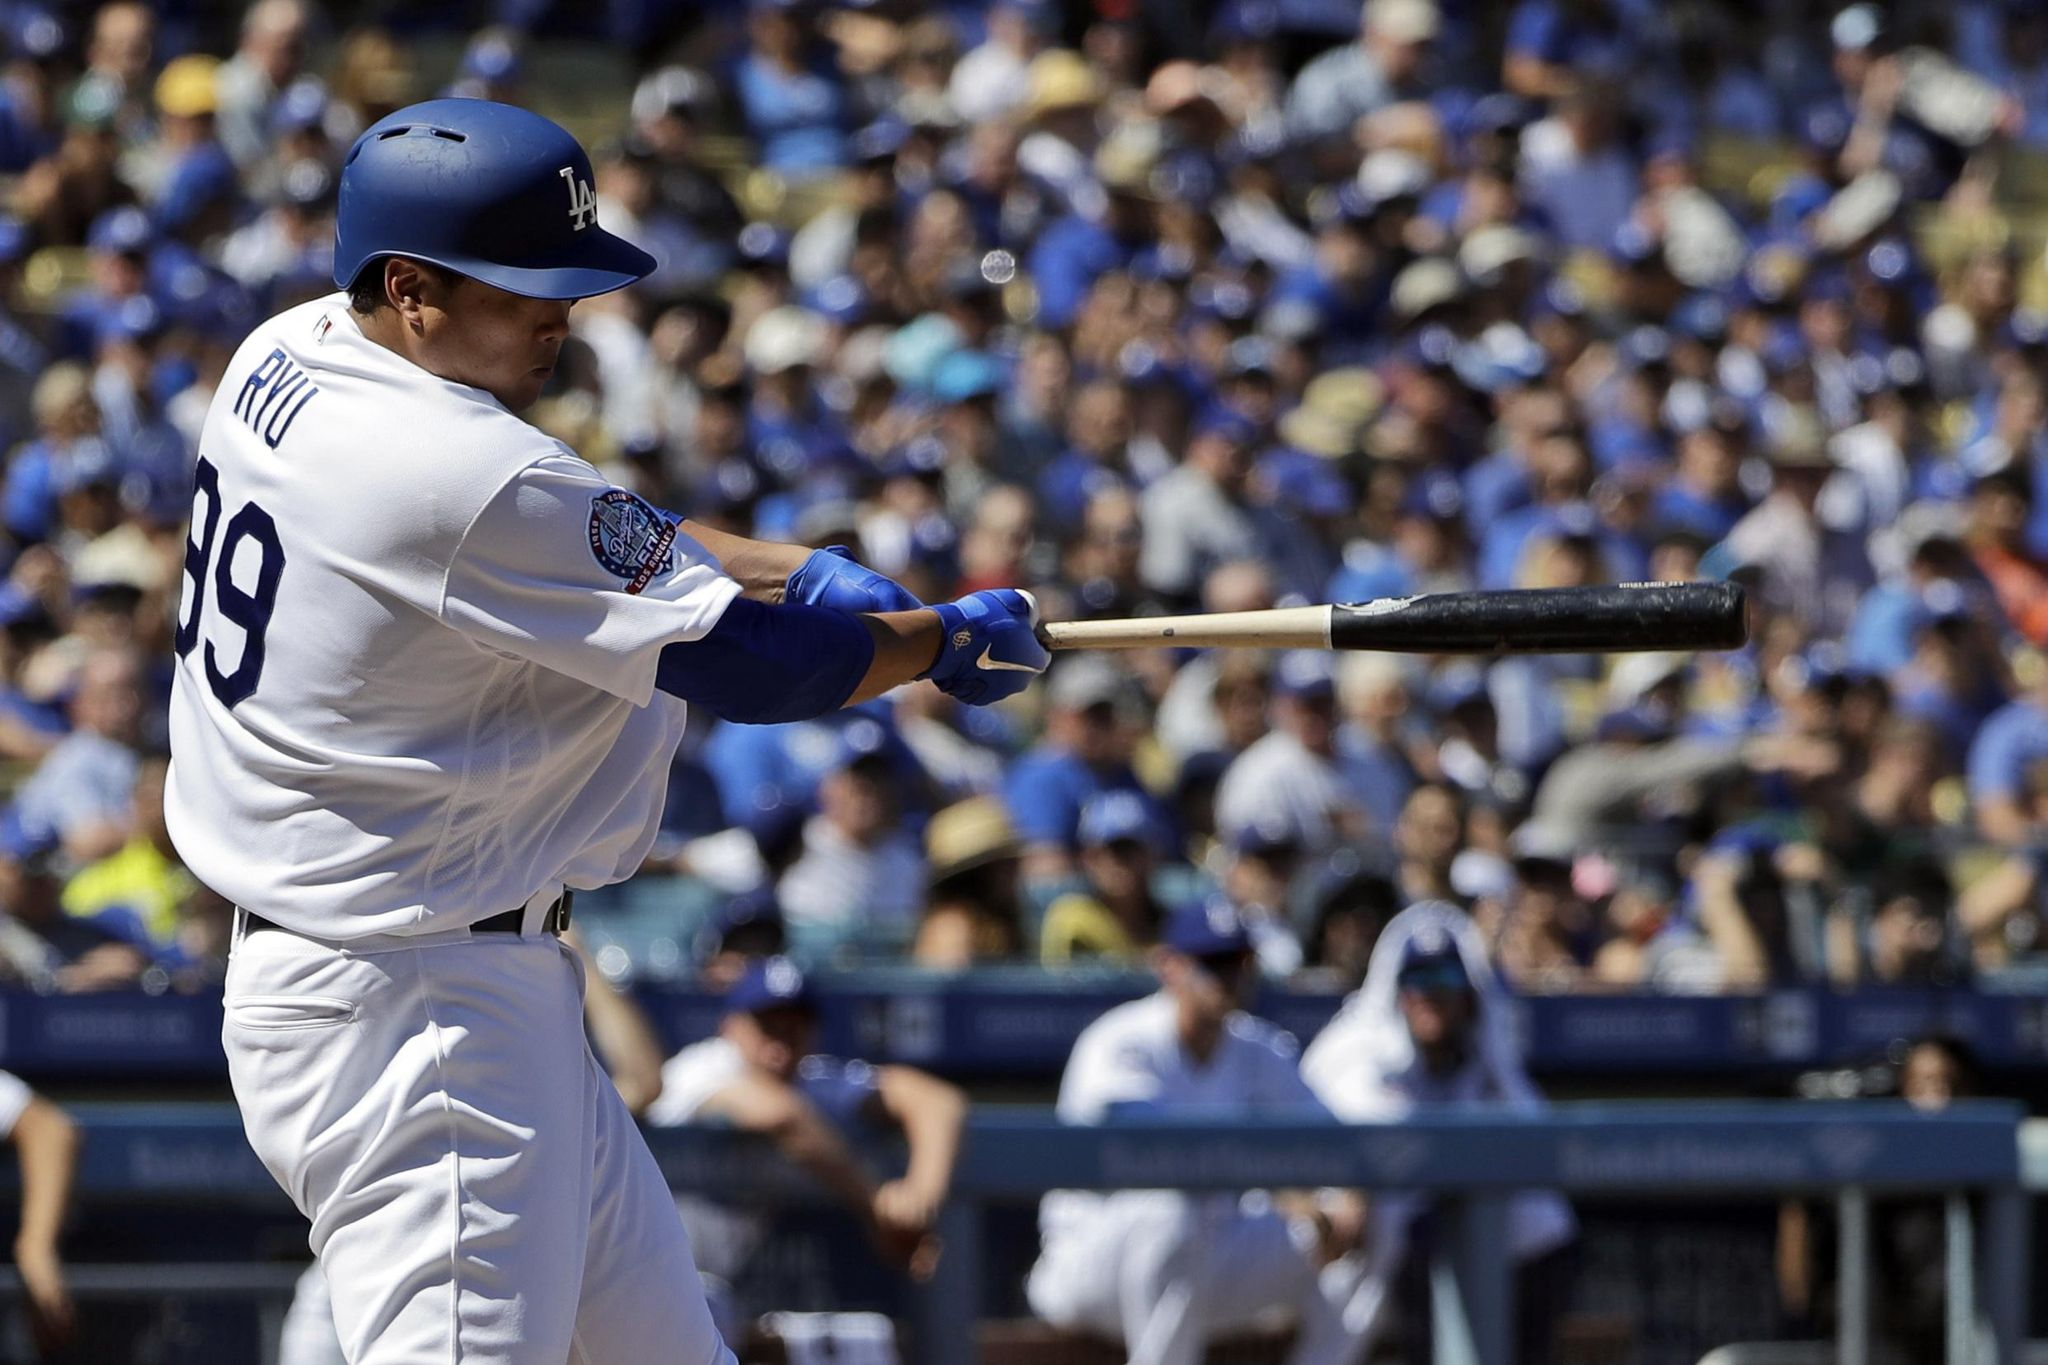 Ryu has 3 of Dodgers' 16 hits in 14-0 rout of Padr...